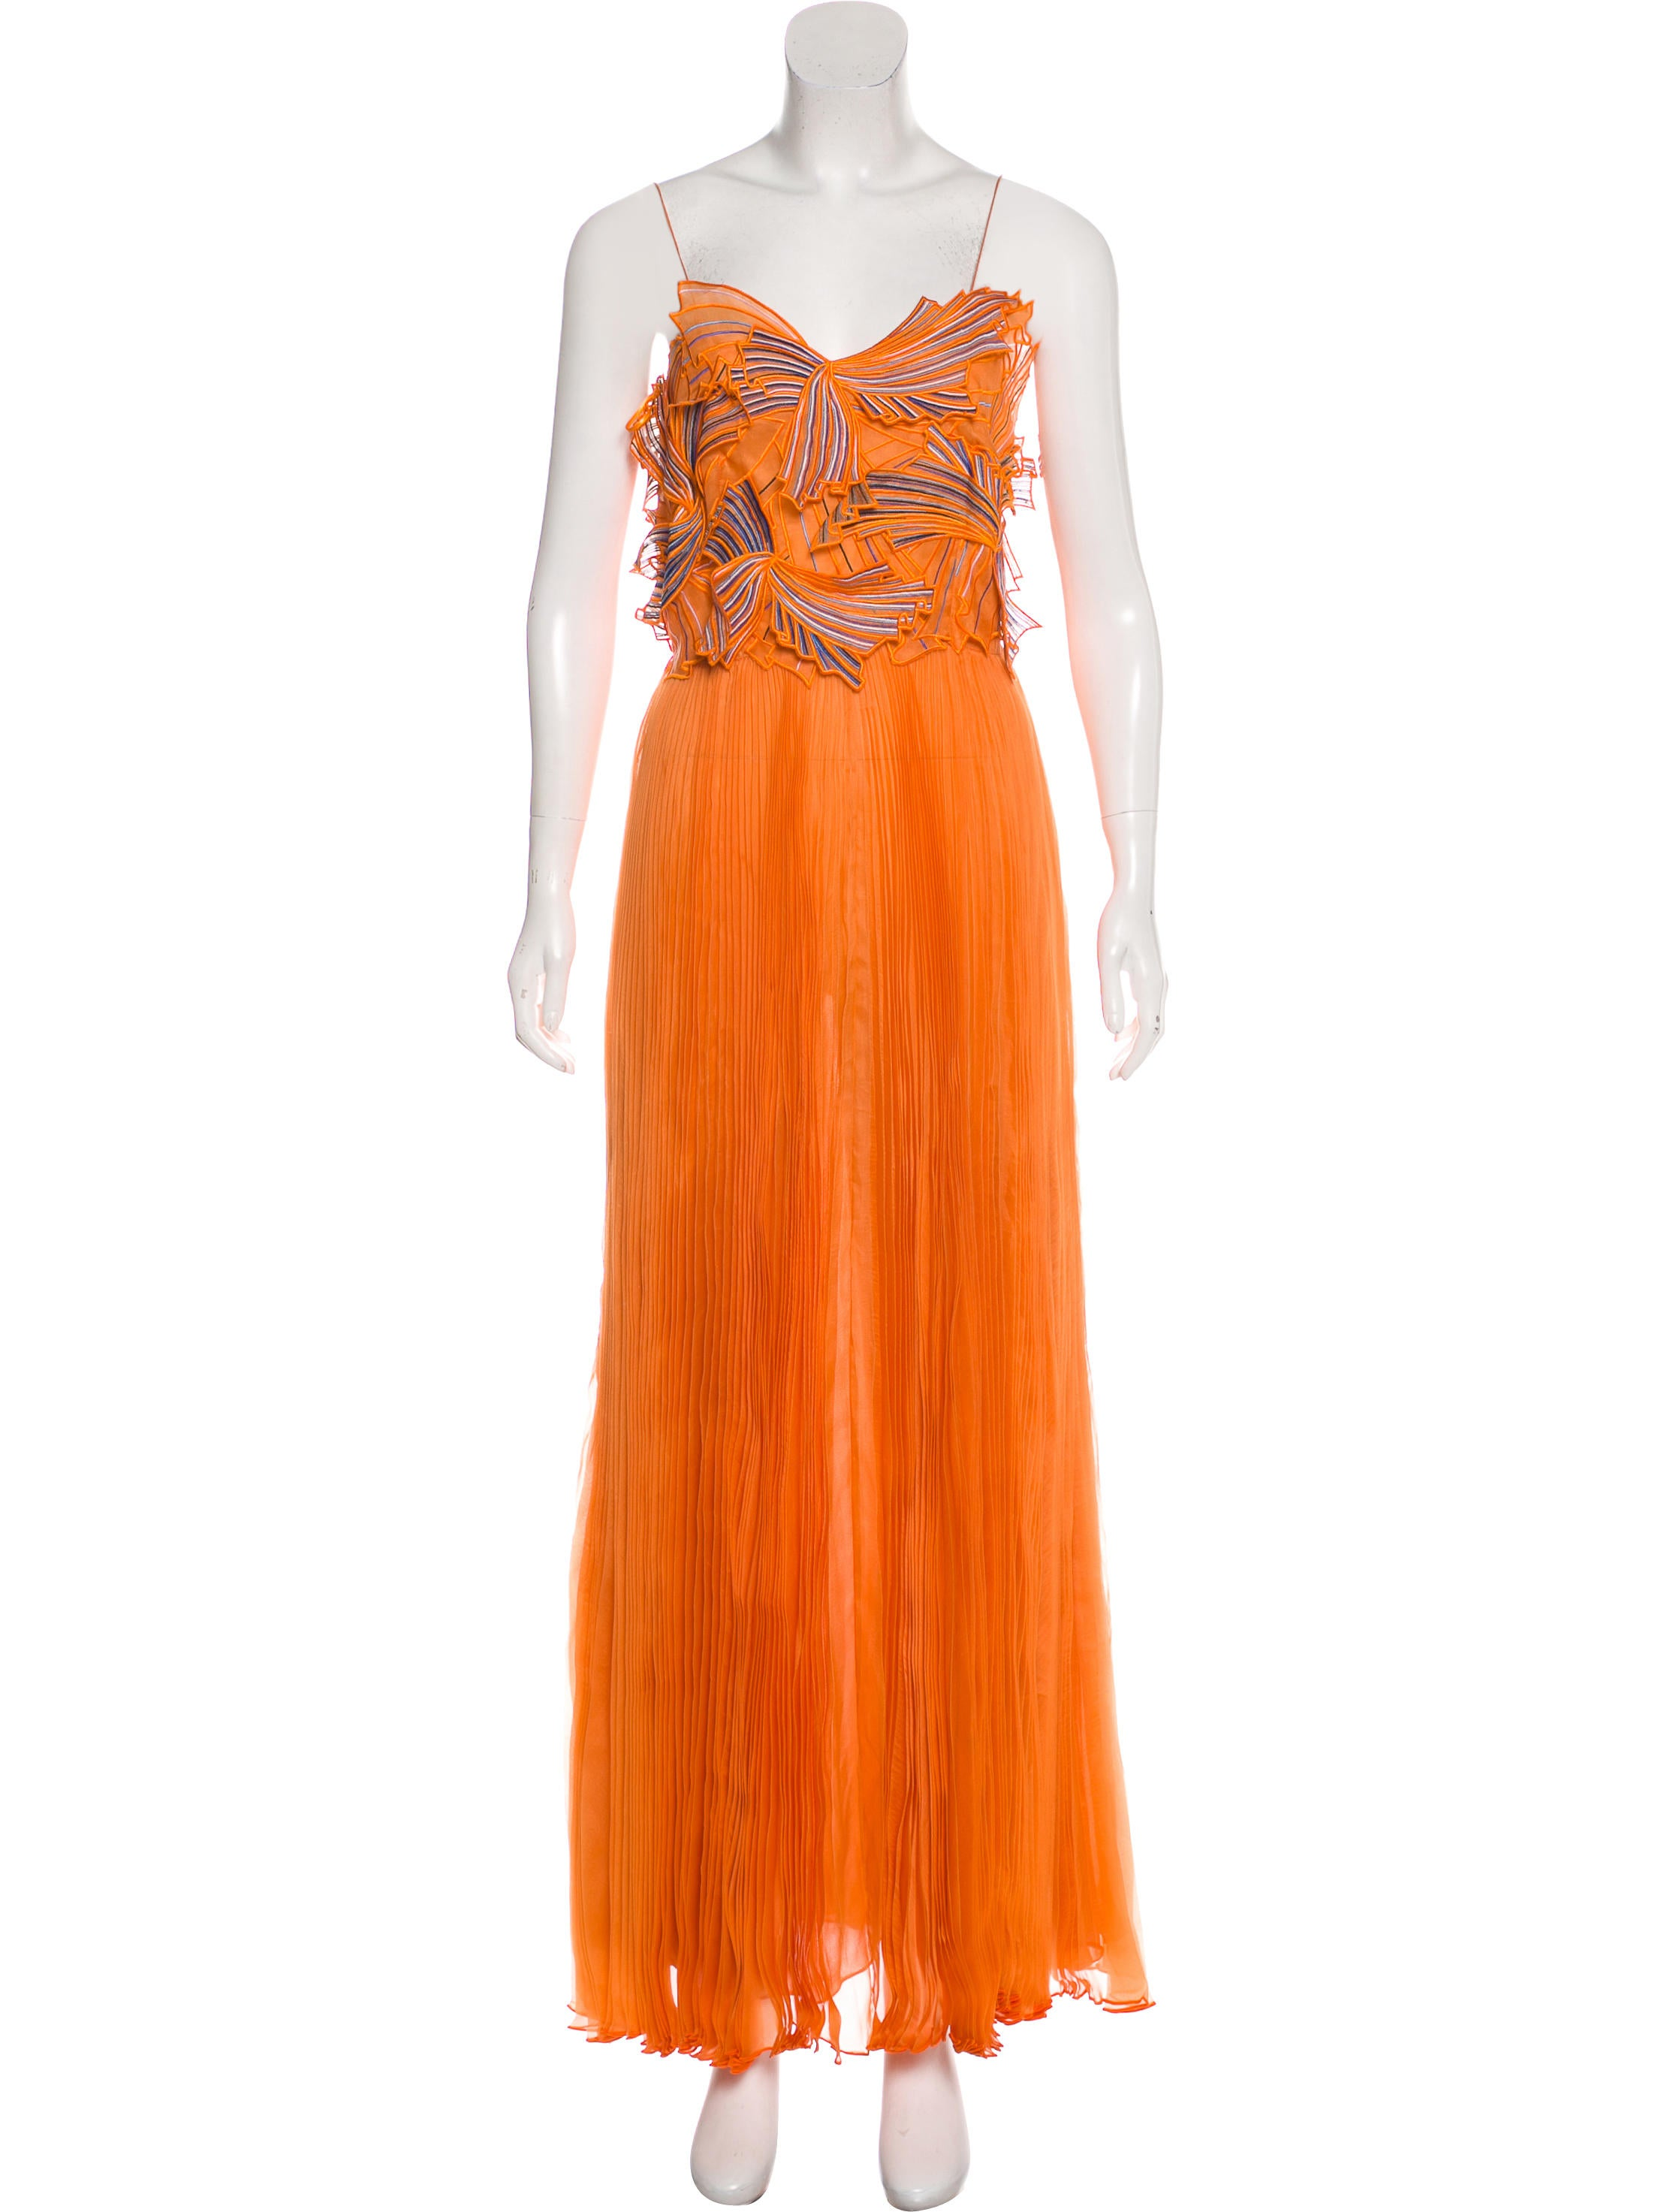 Emilio Pucci Silk Pleated Gown - Clothing - EMI47623 | The RealReal